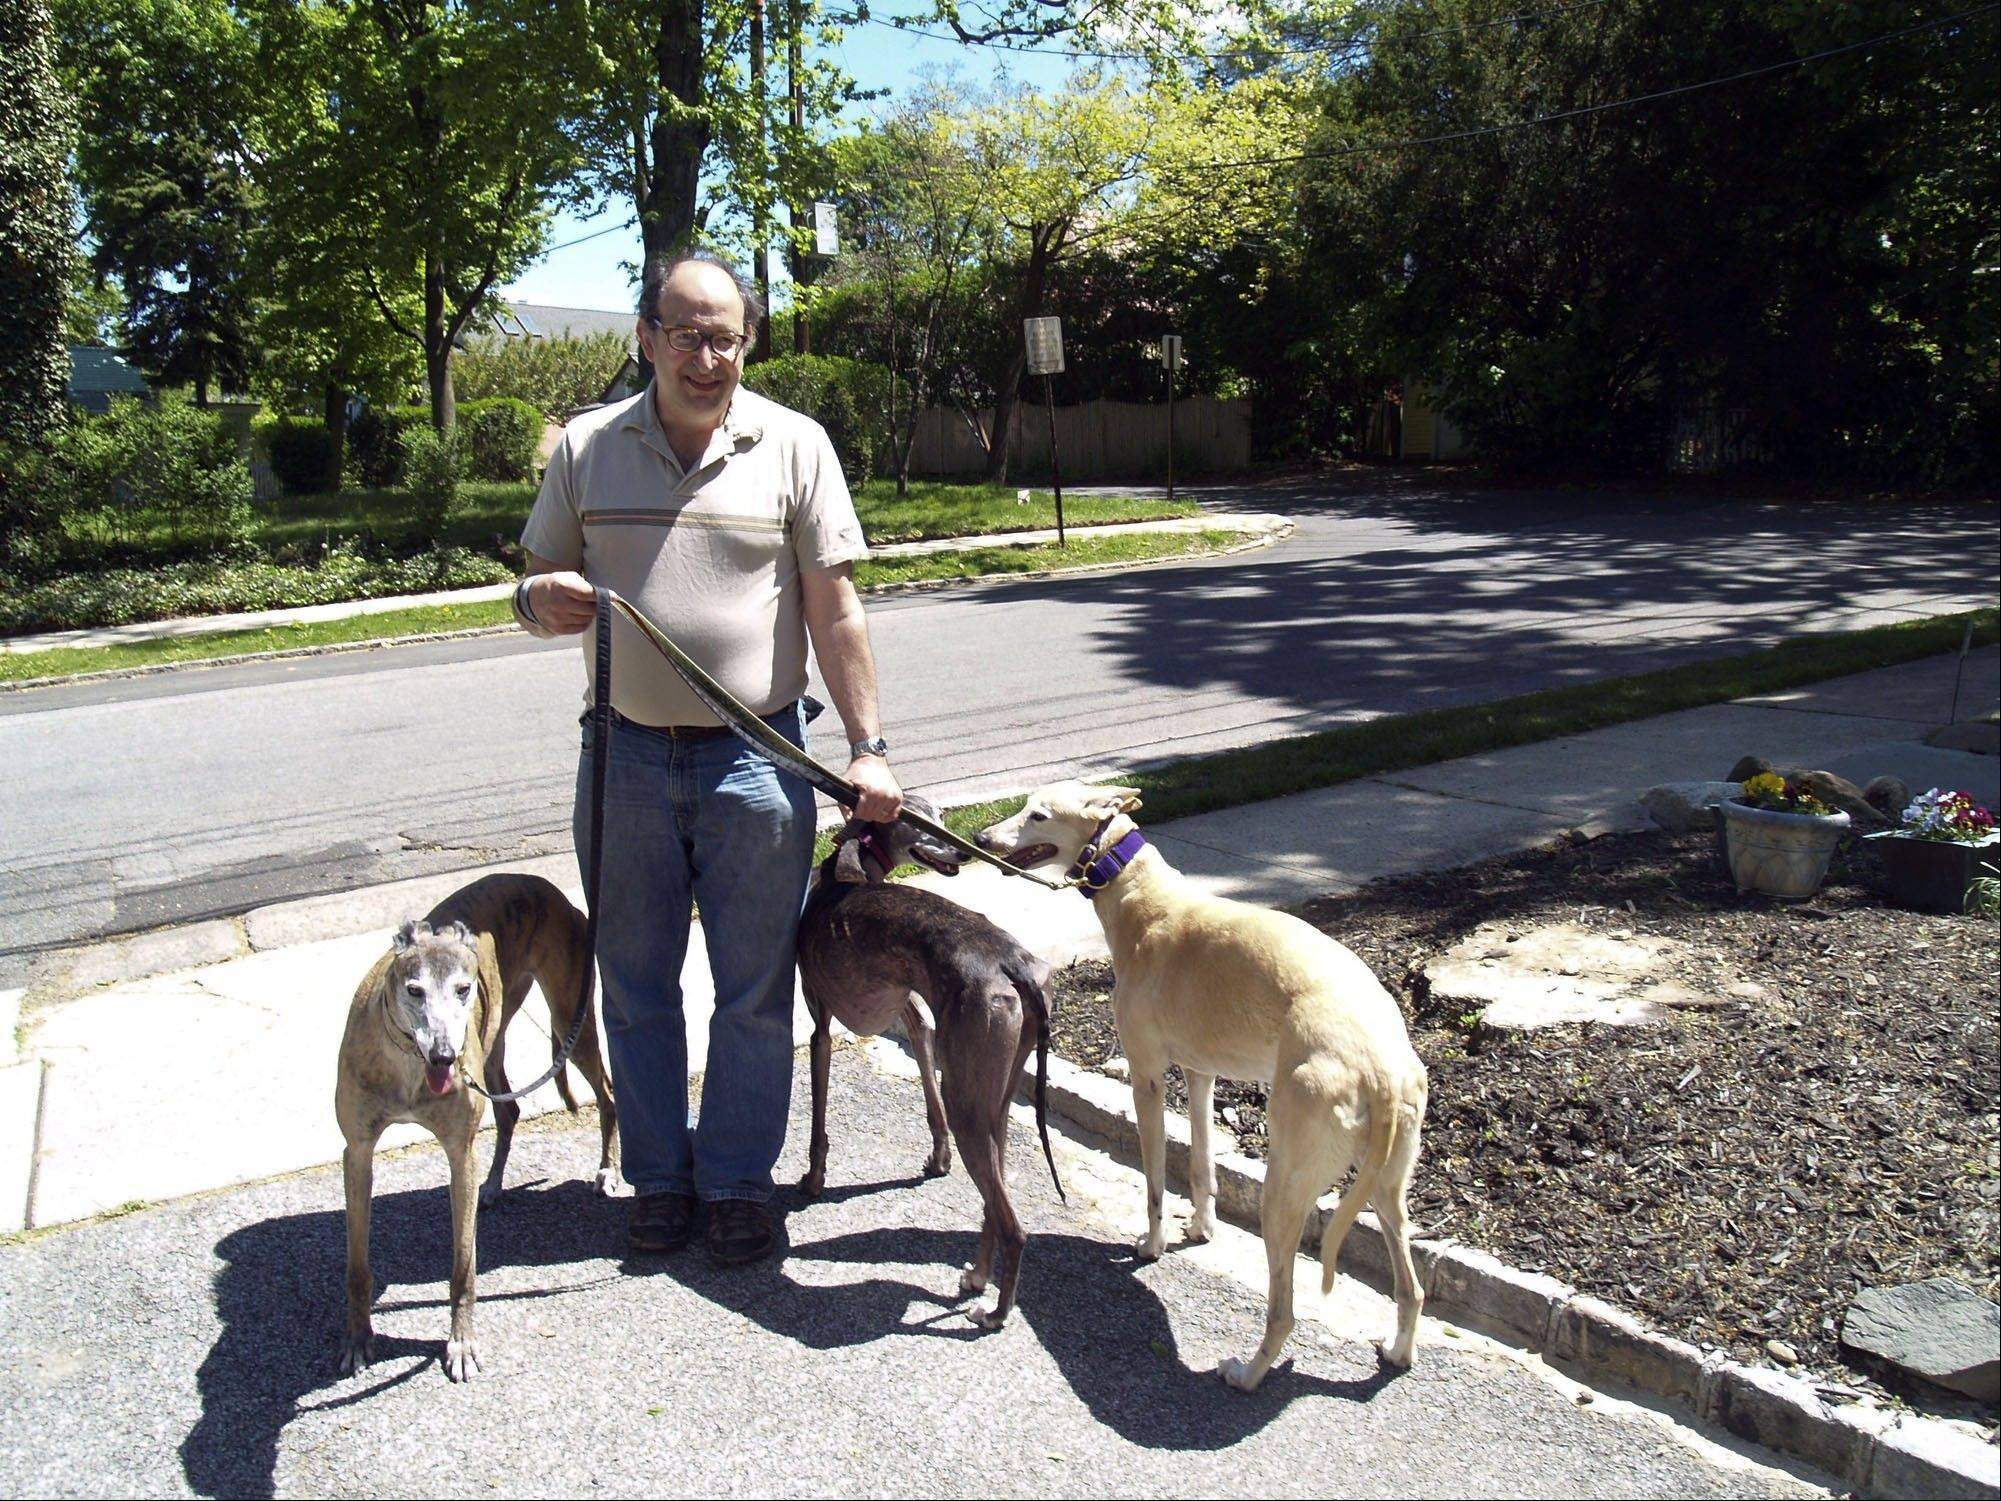 Multiple-greyhound owner and foster home host Peter Romeo takes a stroll with Belle, Carrie and Cleo in Port Washington, N.Y. Romeo and his wife have turned their home into a modest shelter for greyhounds.